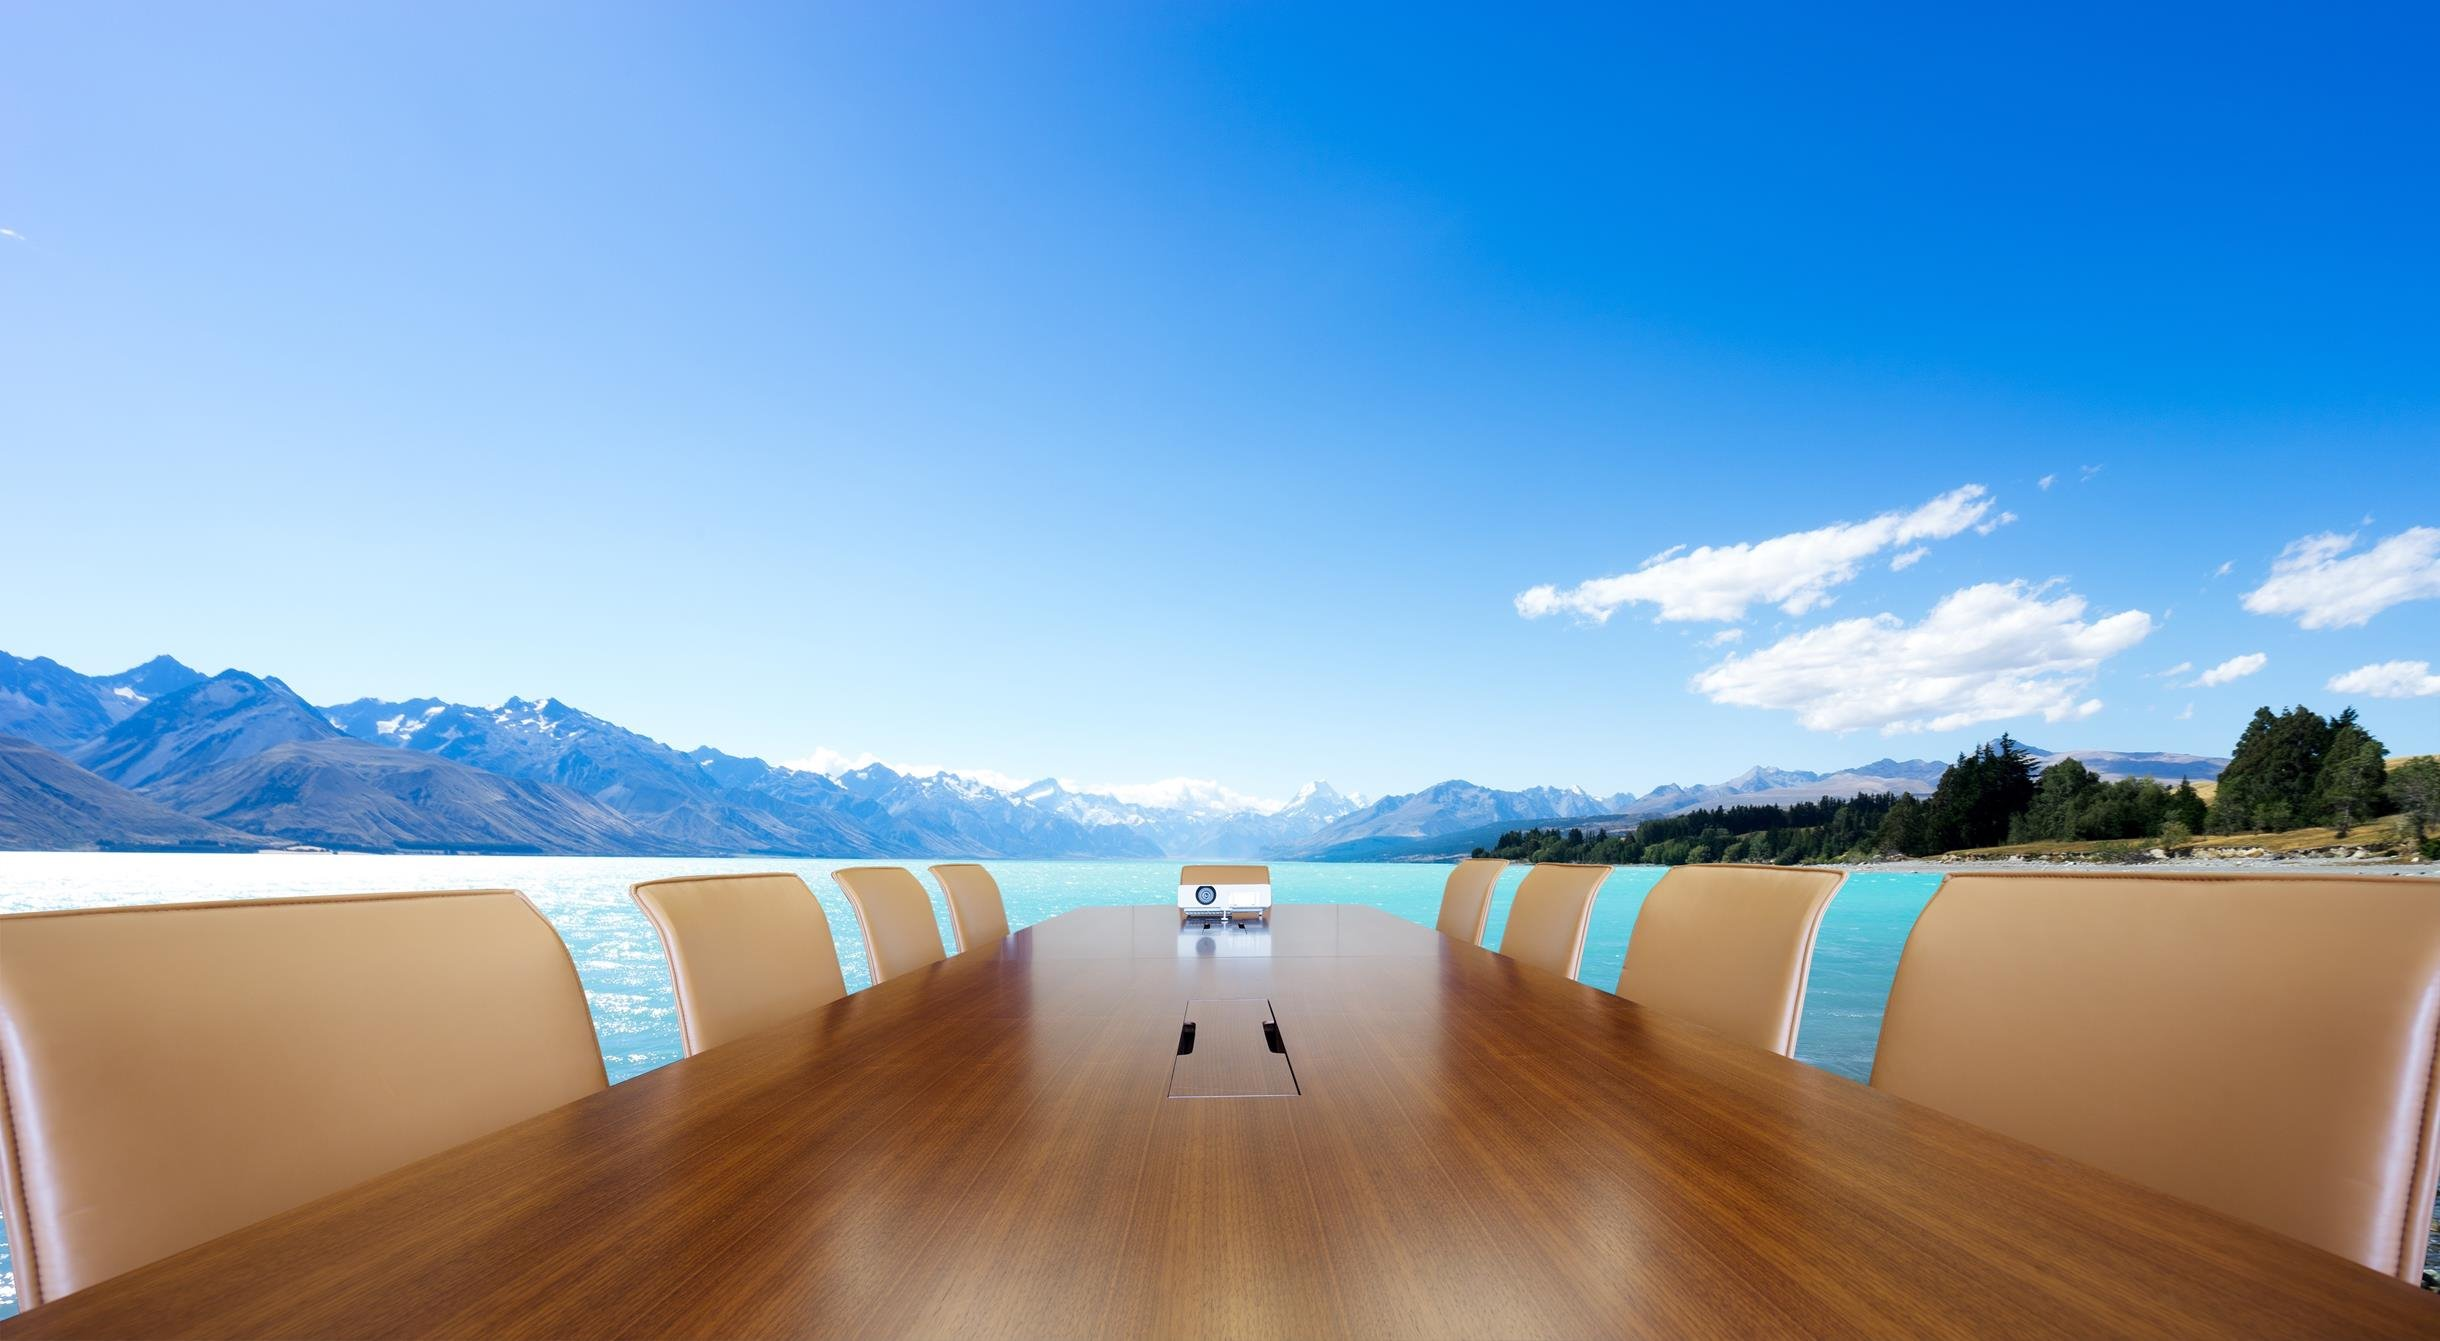 painted conference table with blue lake in blue sky